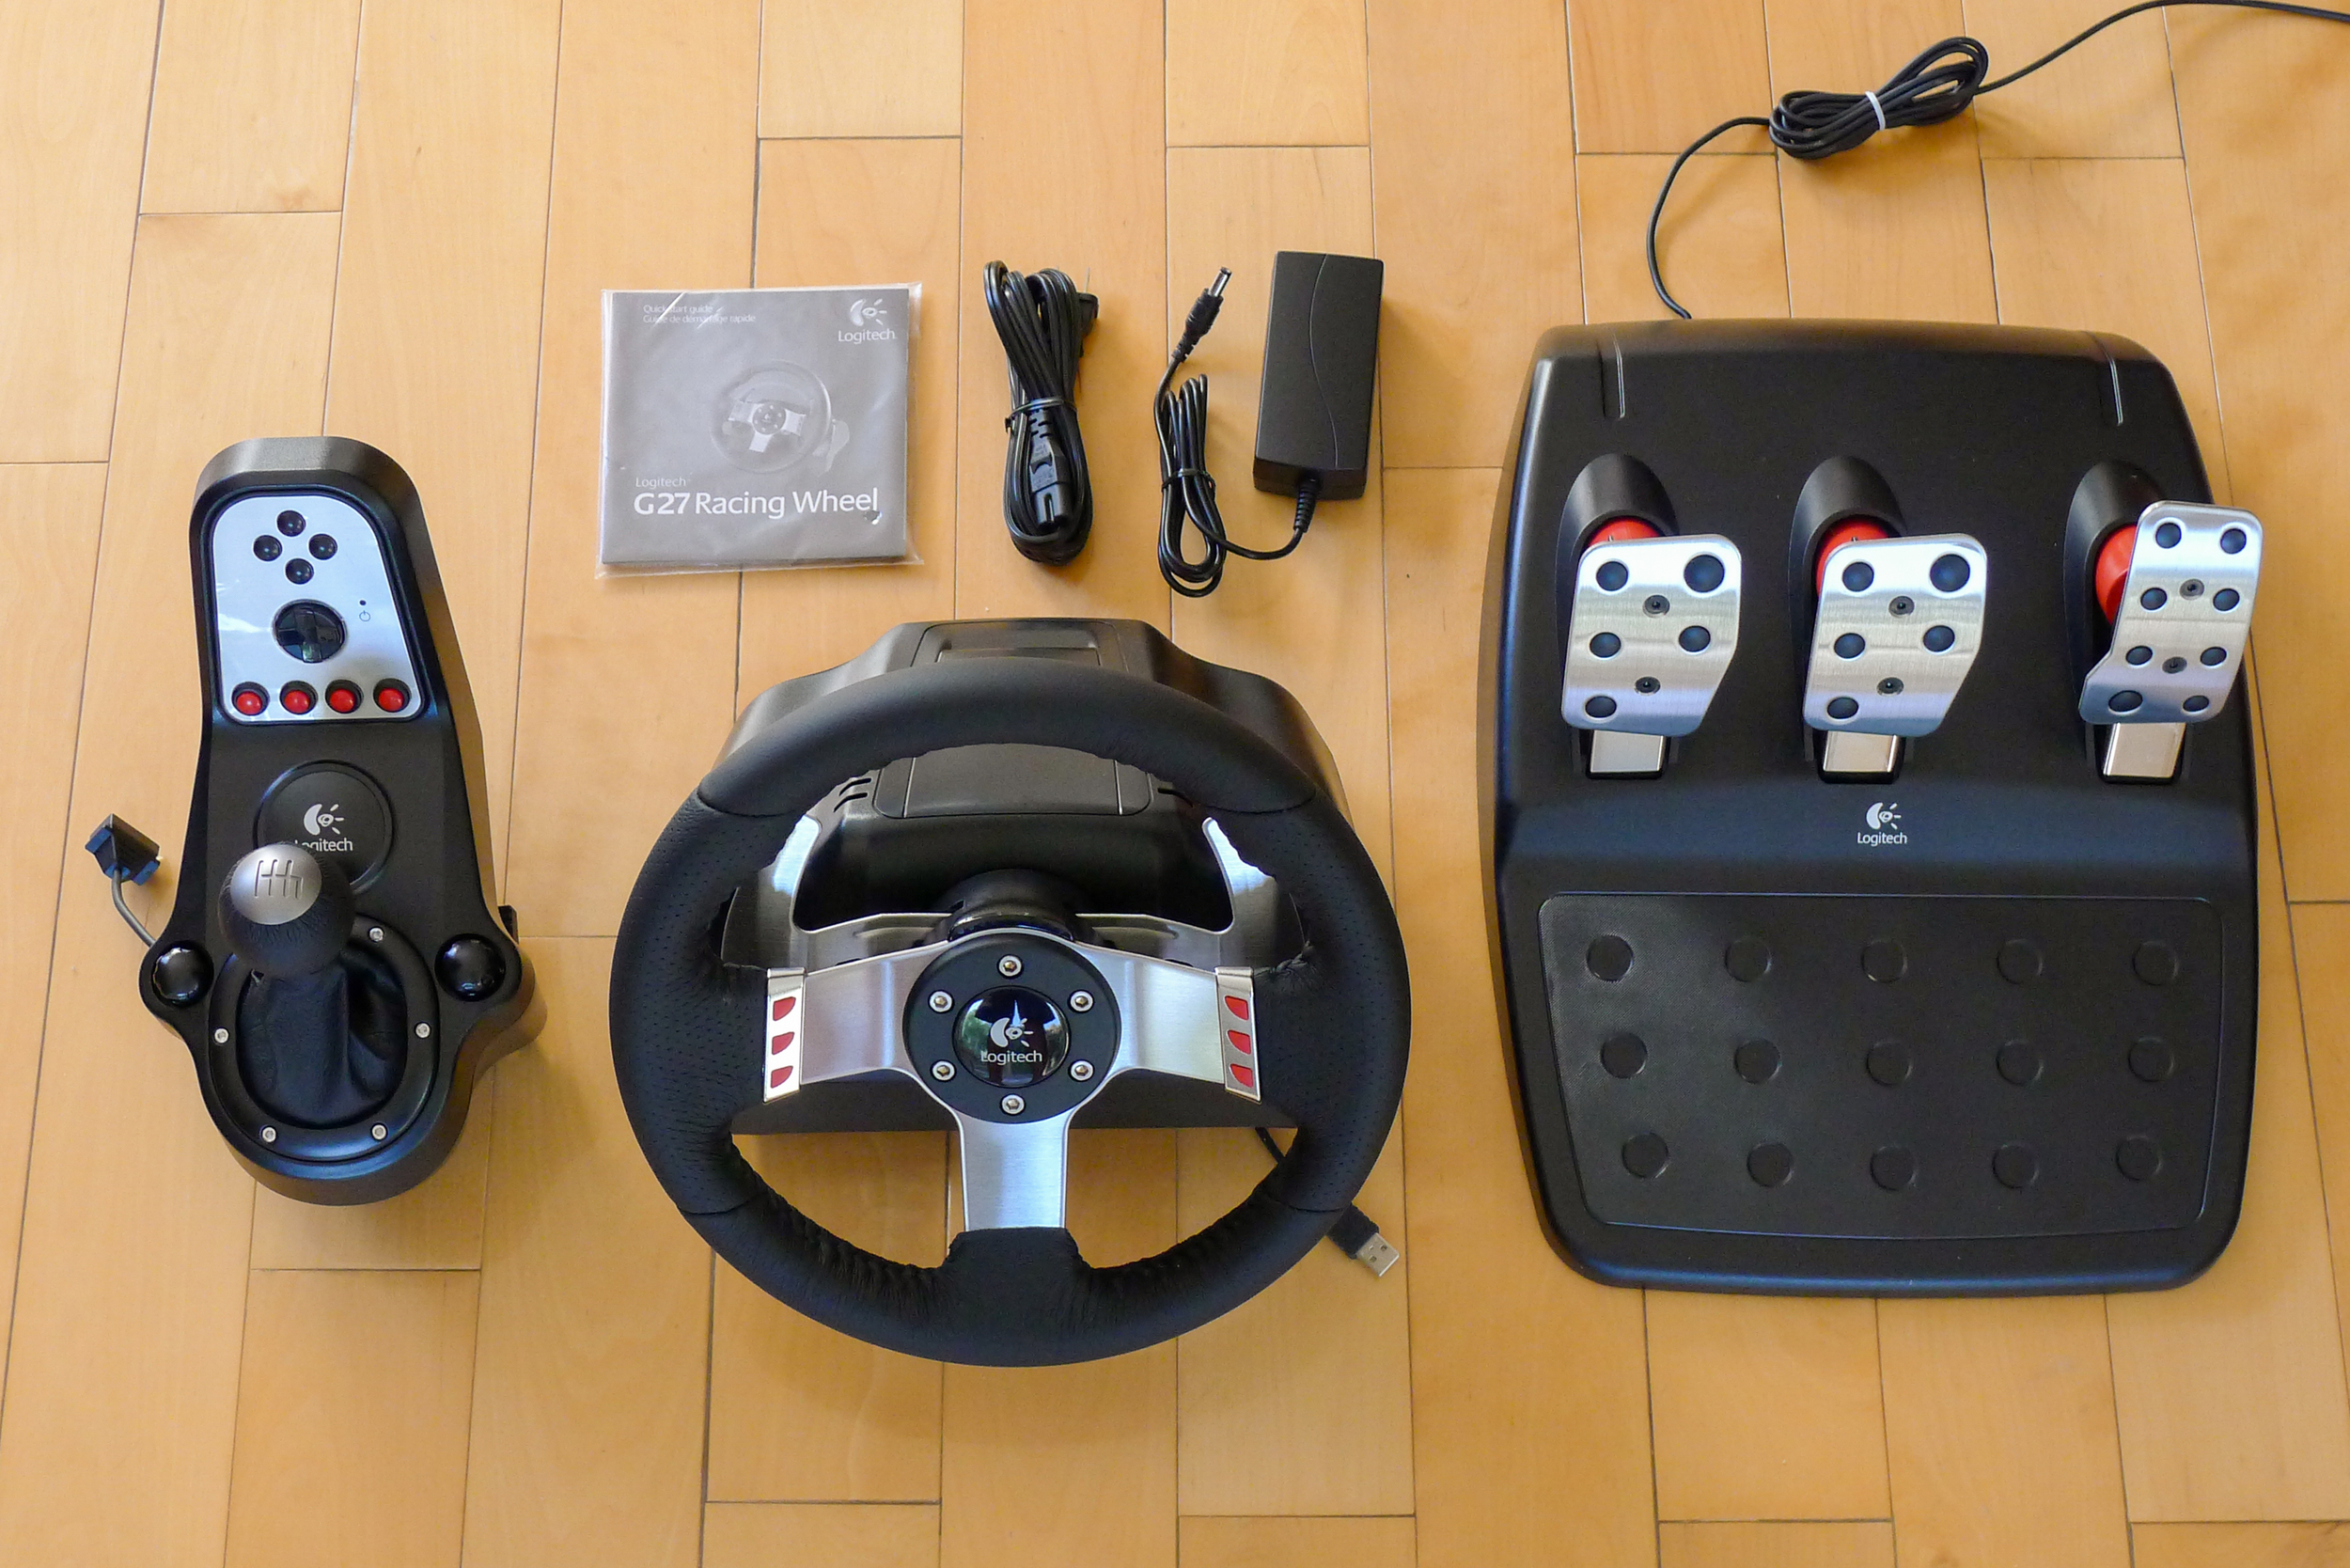 Logitech G27 racing wheel review - jason tsay